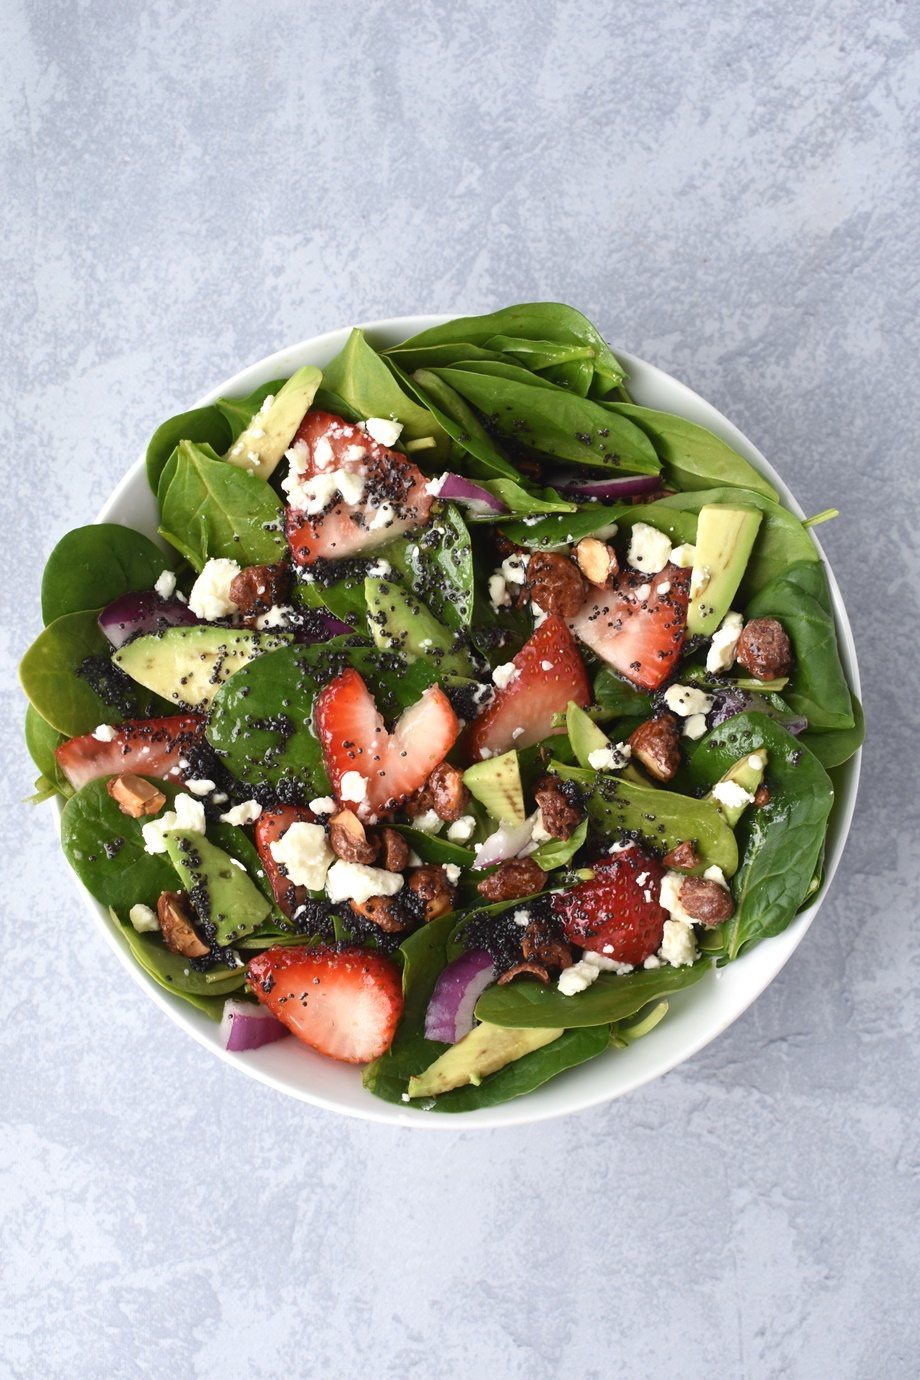 Strawberry Avocado Feta Spinach Salad with Poppy Seed Dressing